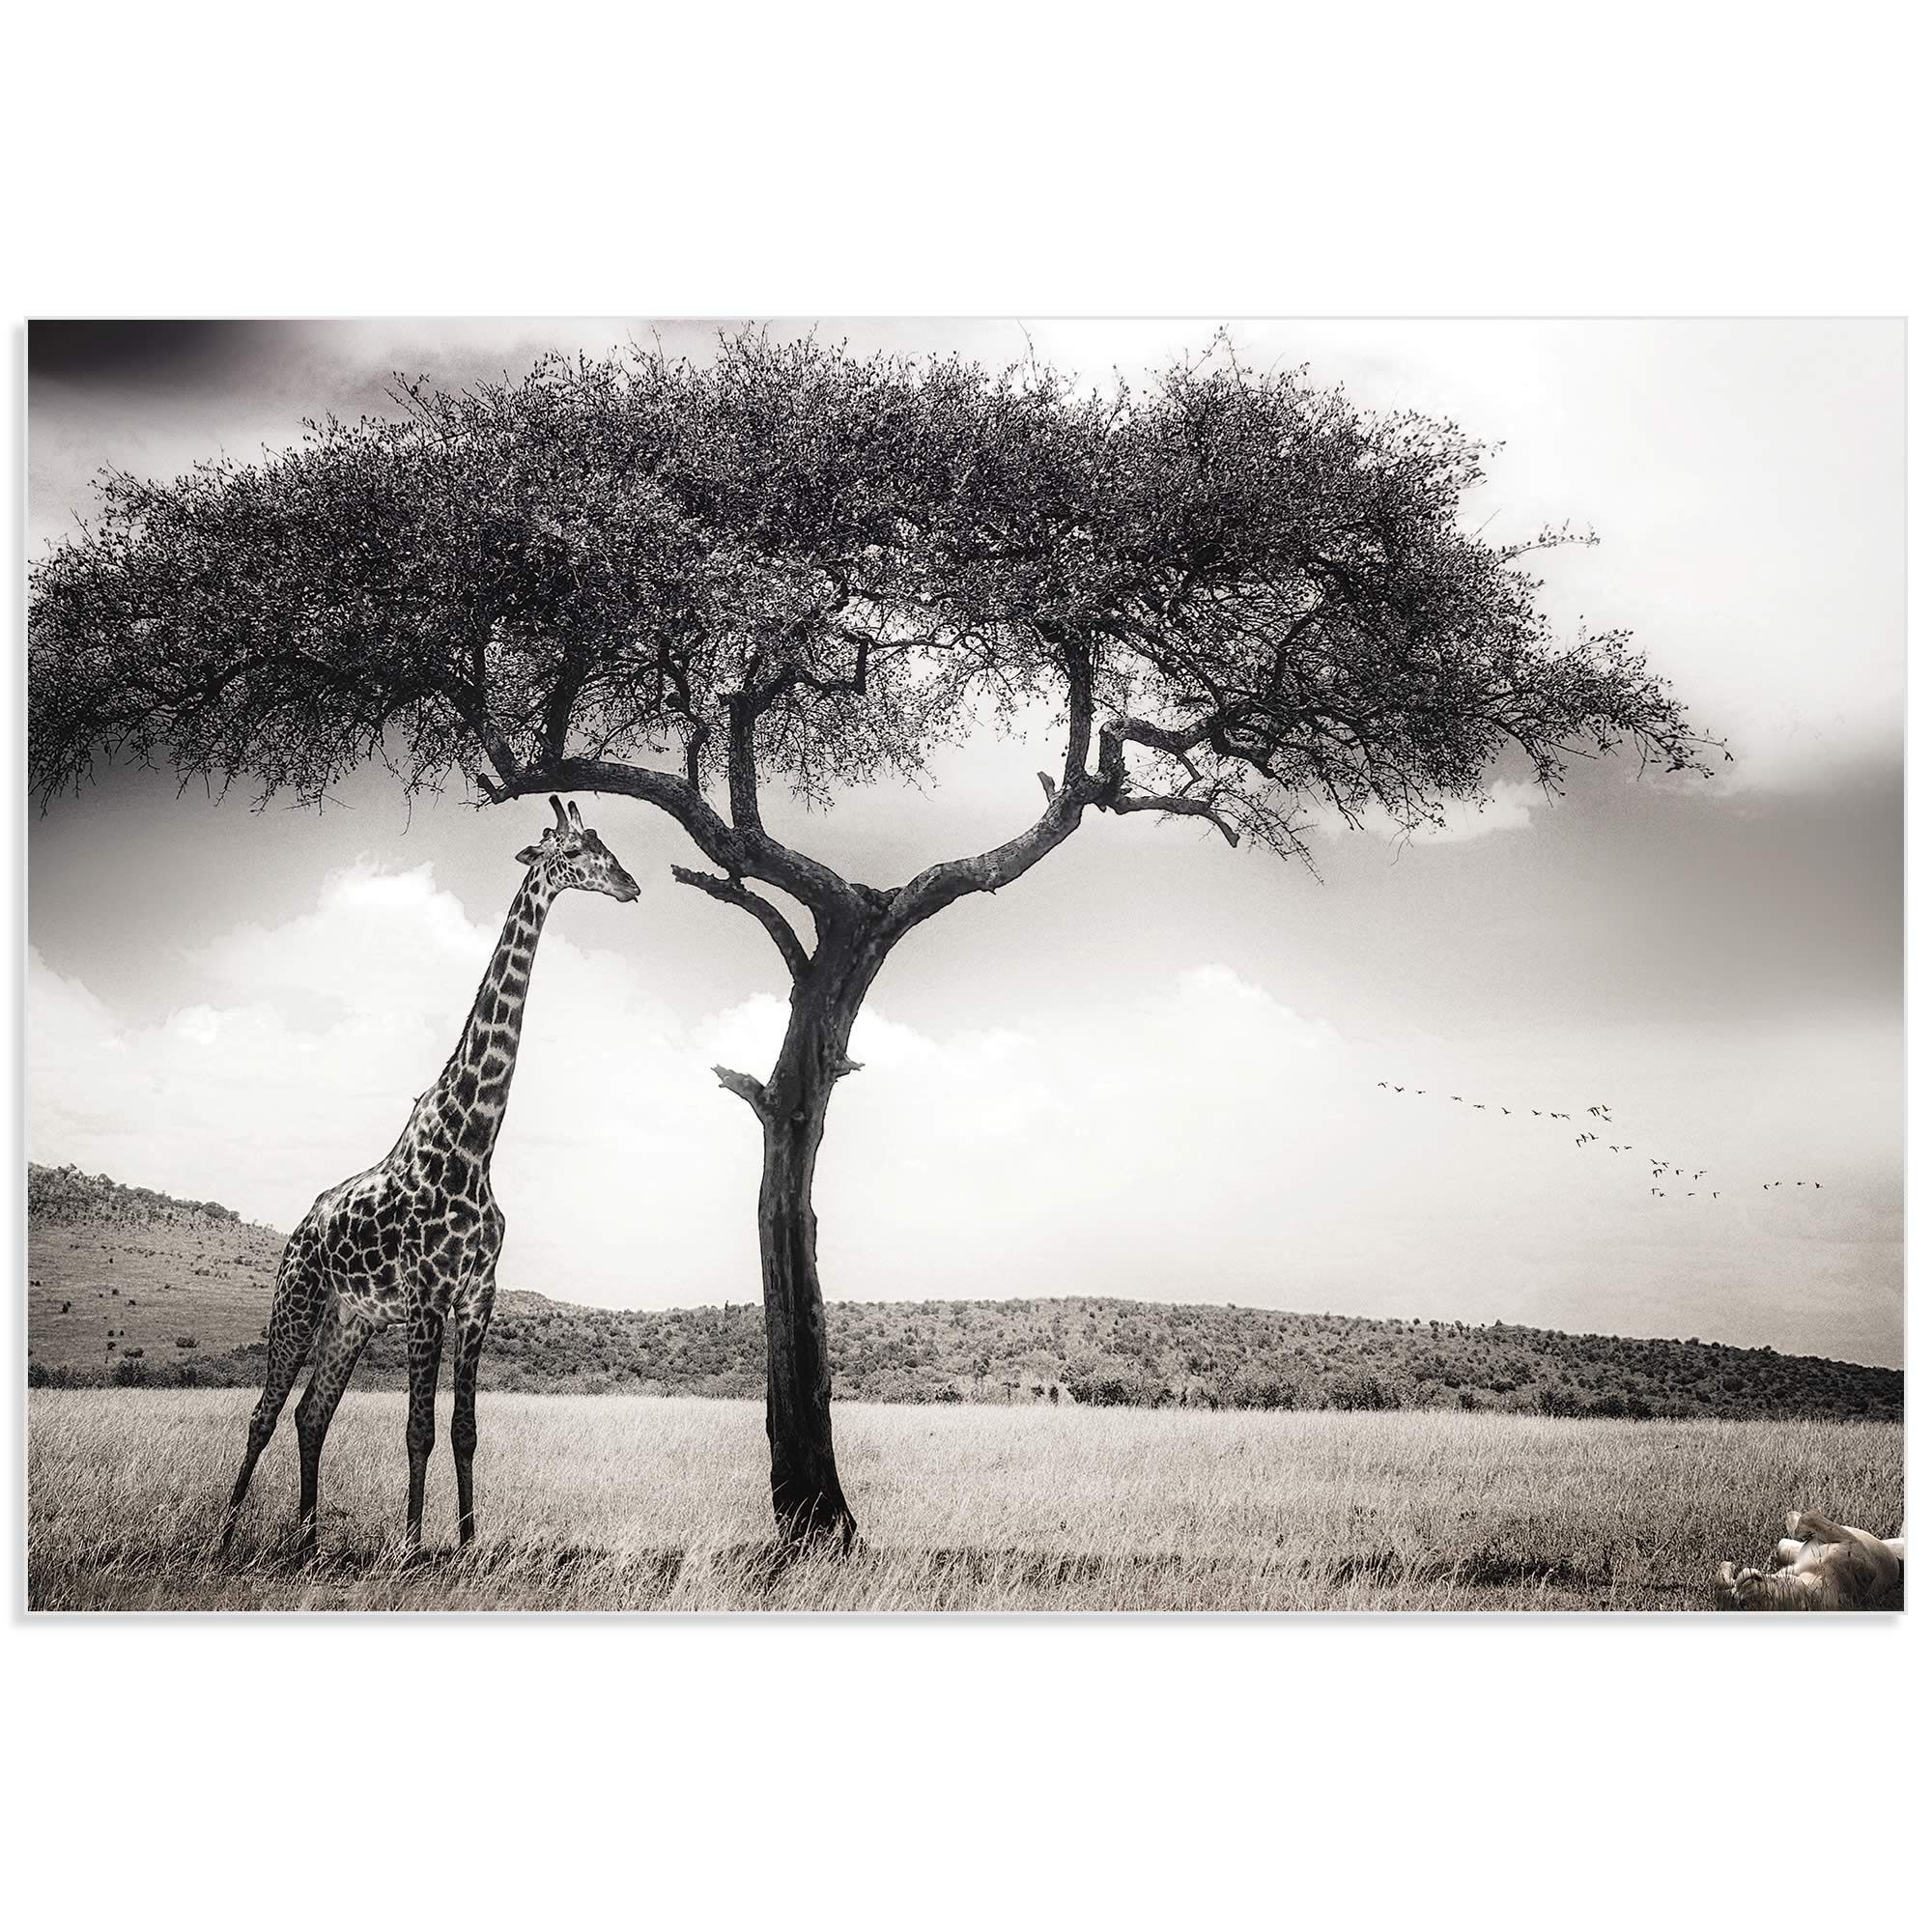 Under the African Sun by Piet Flour - Giraffe Wall Art on Metal or Acrylic - Alternate View 2